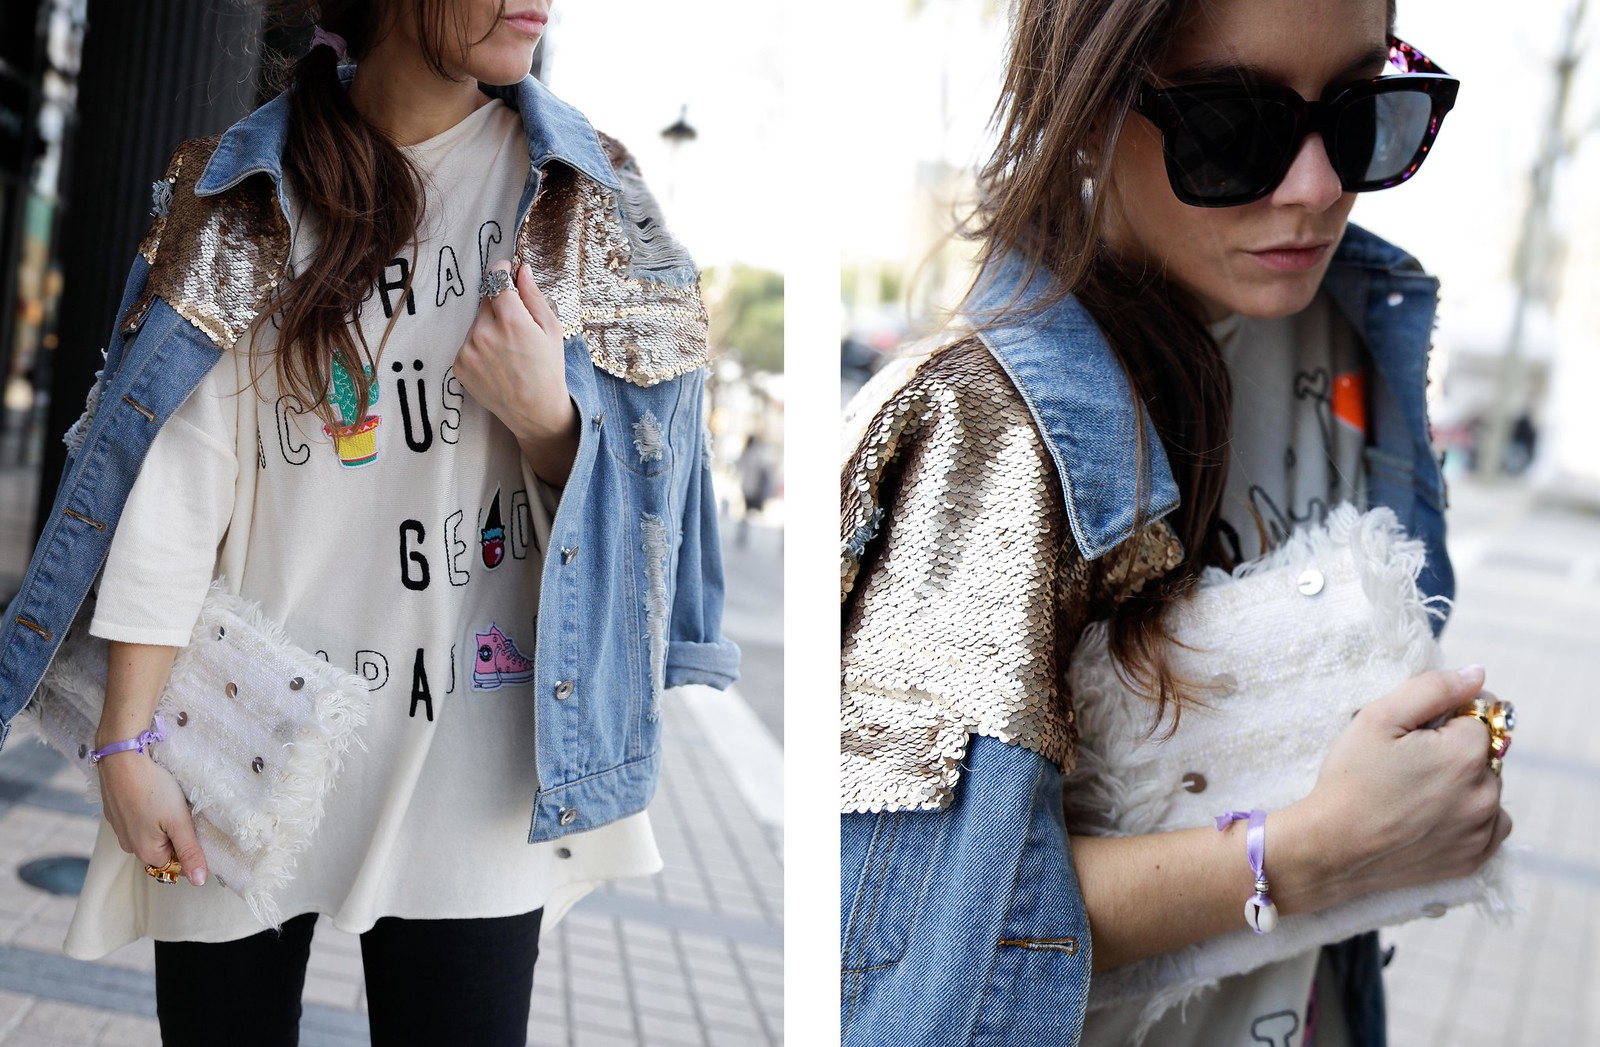 TREND_ ALERT_EMBROIDERY_AND_PATCHES_SEQUINS_DAY INFLUENCER OOTD THEGUESTGIRL STREET